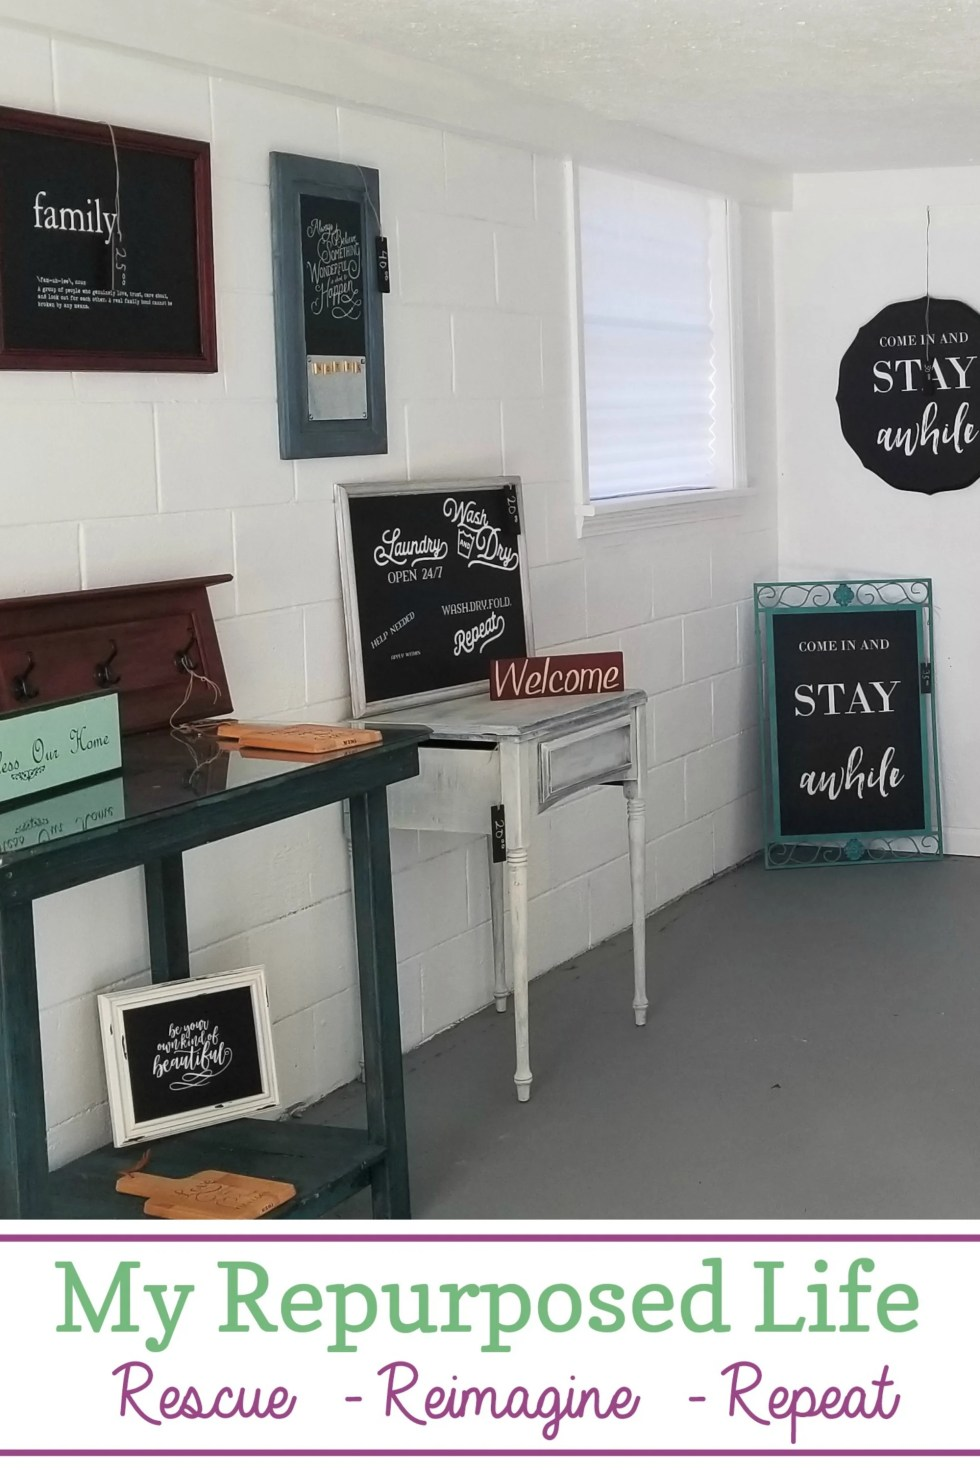 sometimes you have to think outside the box and get creative when you're a furniture flipper. An old outbuilding gets and update and serves a new purpose. #MyRepurposedLife #furniture #flipper #repurposed #outbuilding #booth #selling via @repurposedlife